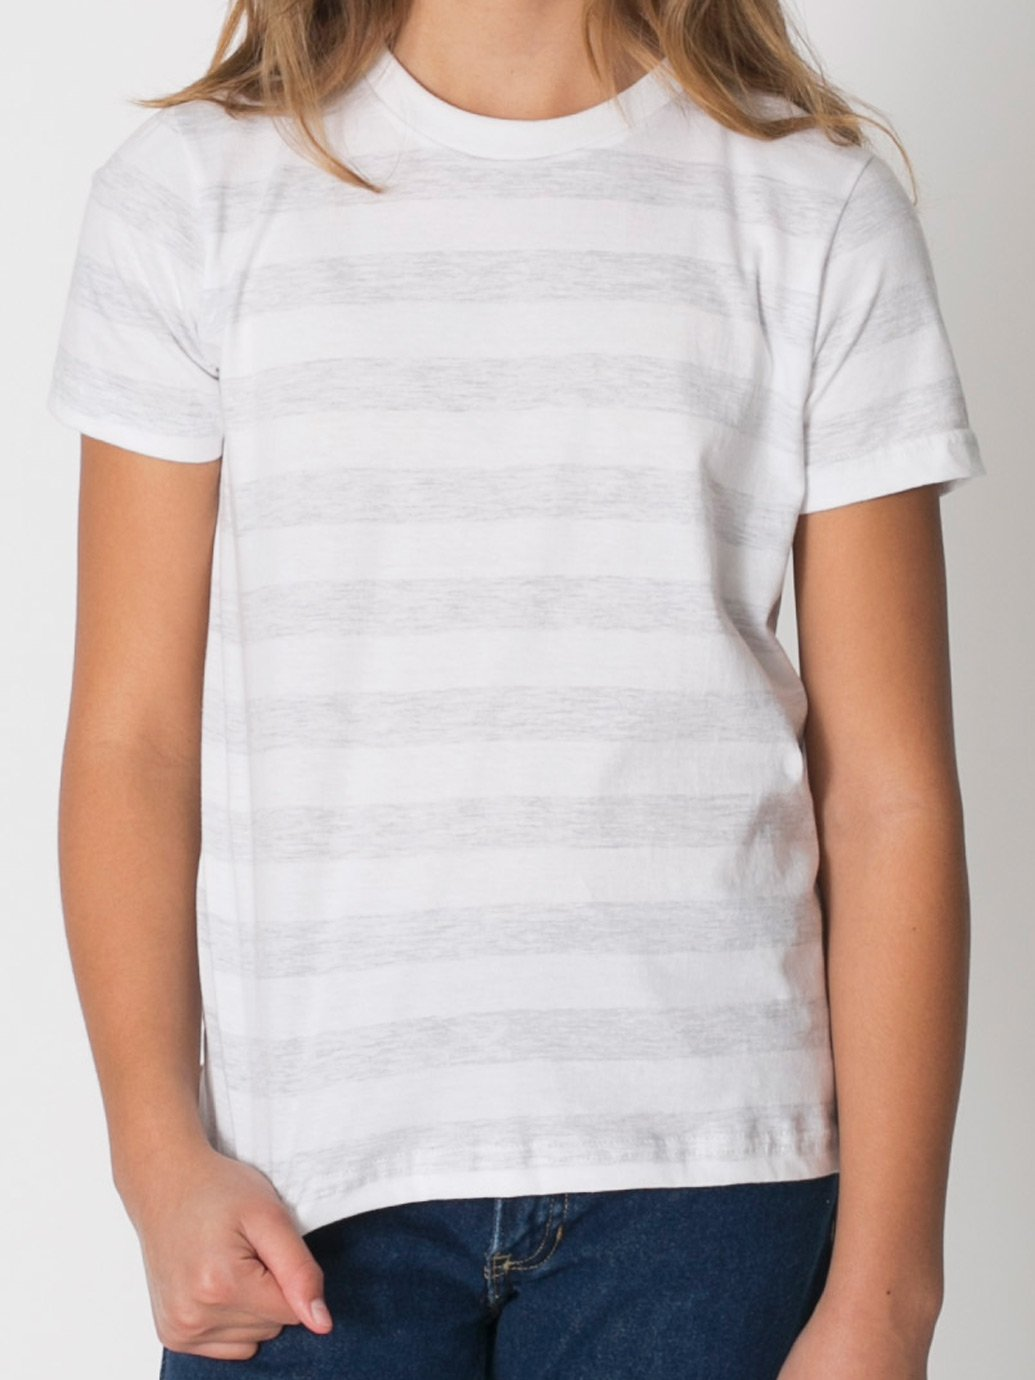 American Apparel Boys Fine Jersey Short-Sleeve T-Shirt (2201) -BABY BLUE -10 by American Apparel (Image #5)